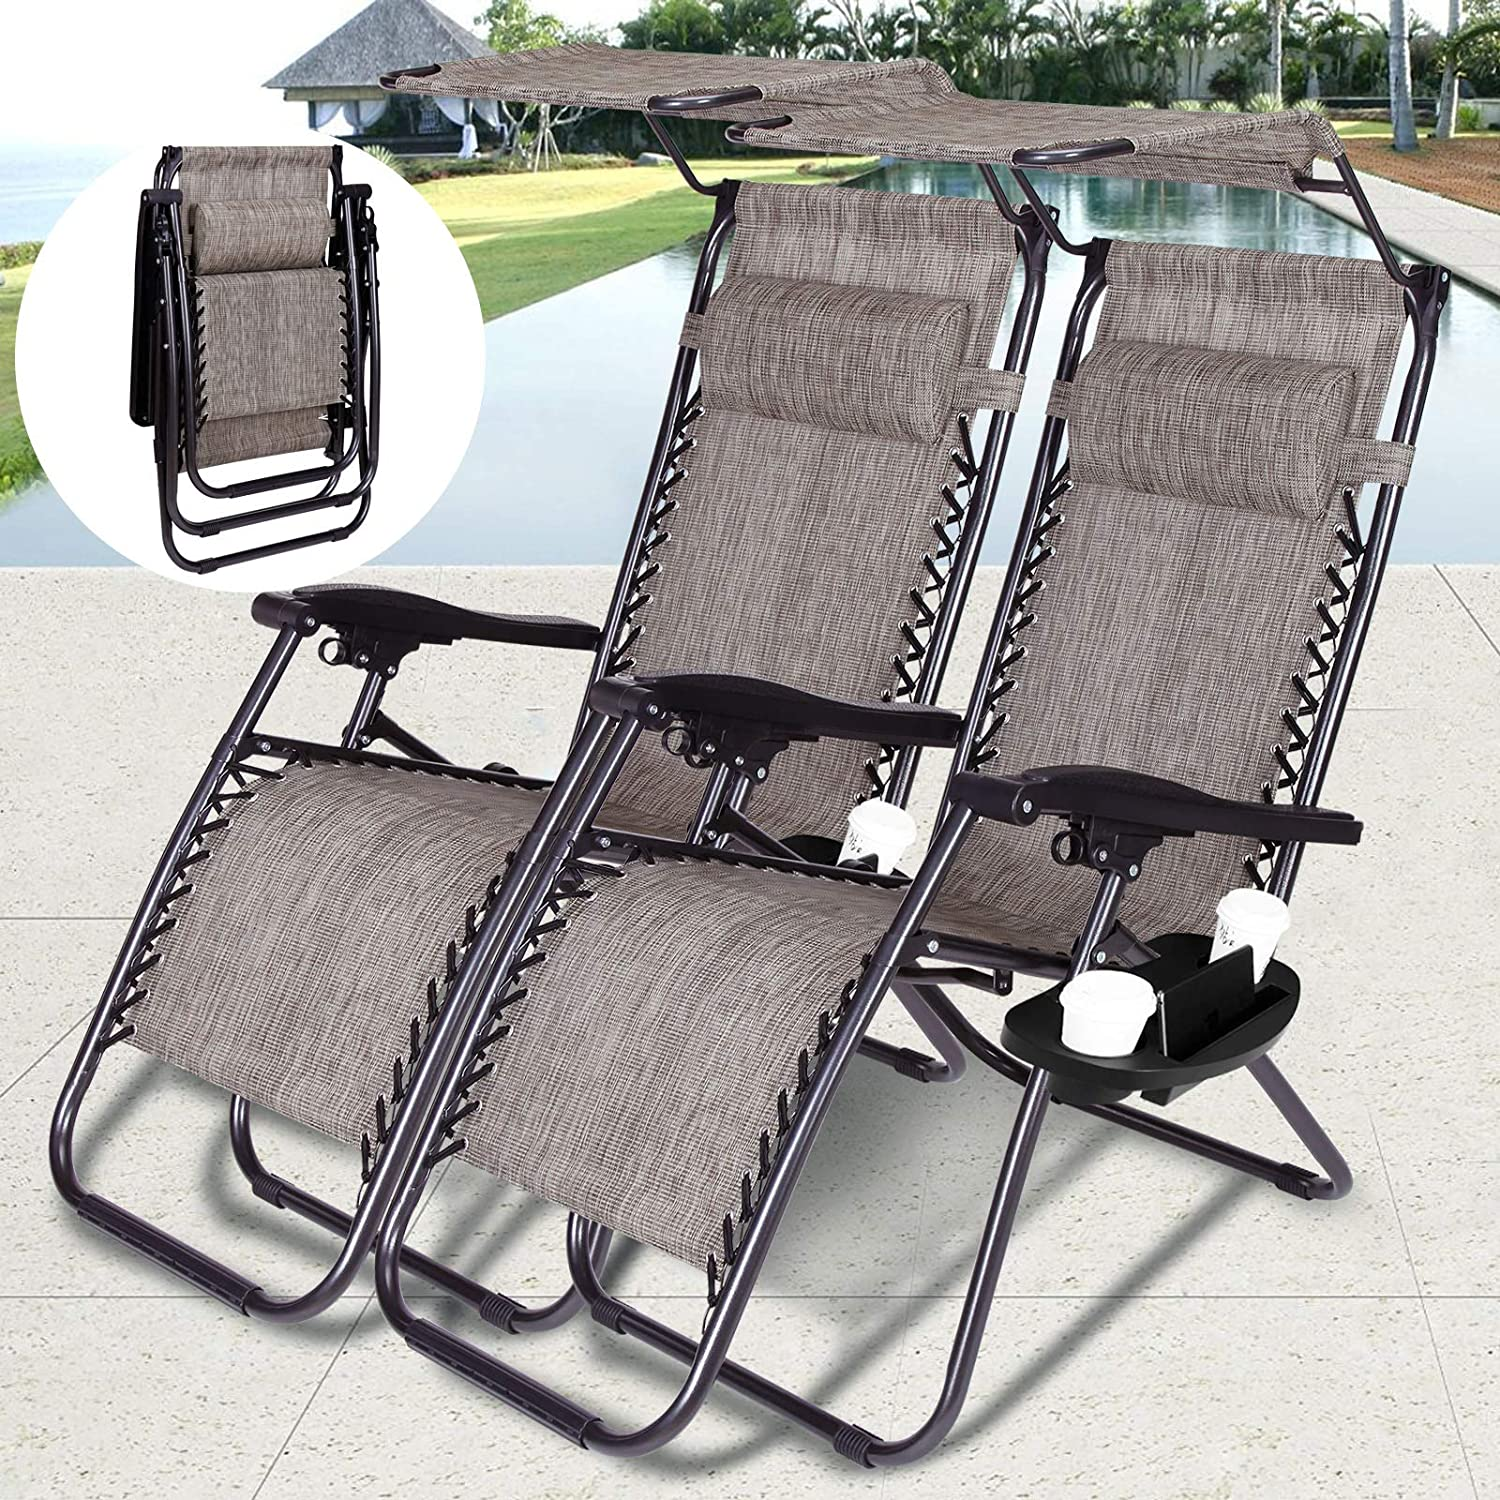 LINLUX 3 Piece Rocking Bistro Set Outdoor Steel Patio Furniture Sets with Two Thickened Cushions Glass Coffee Table